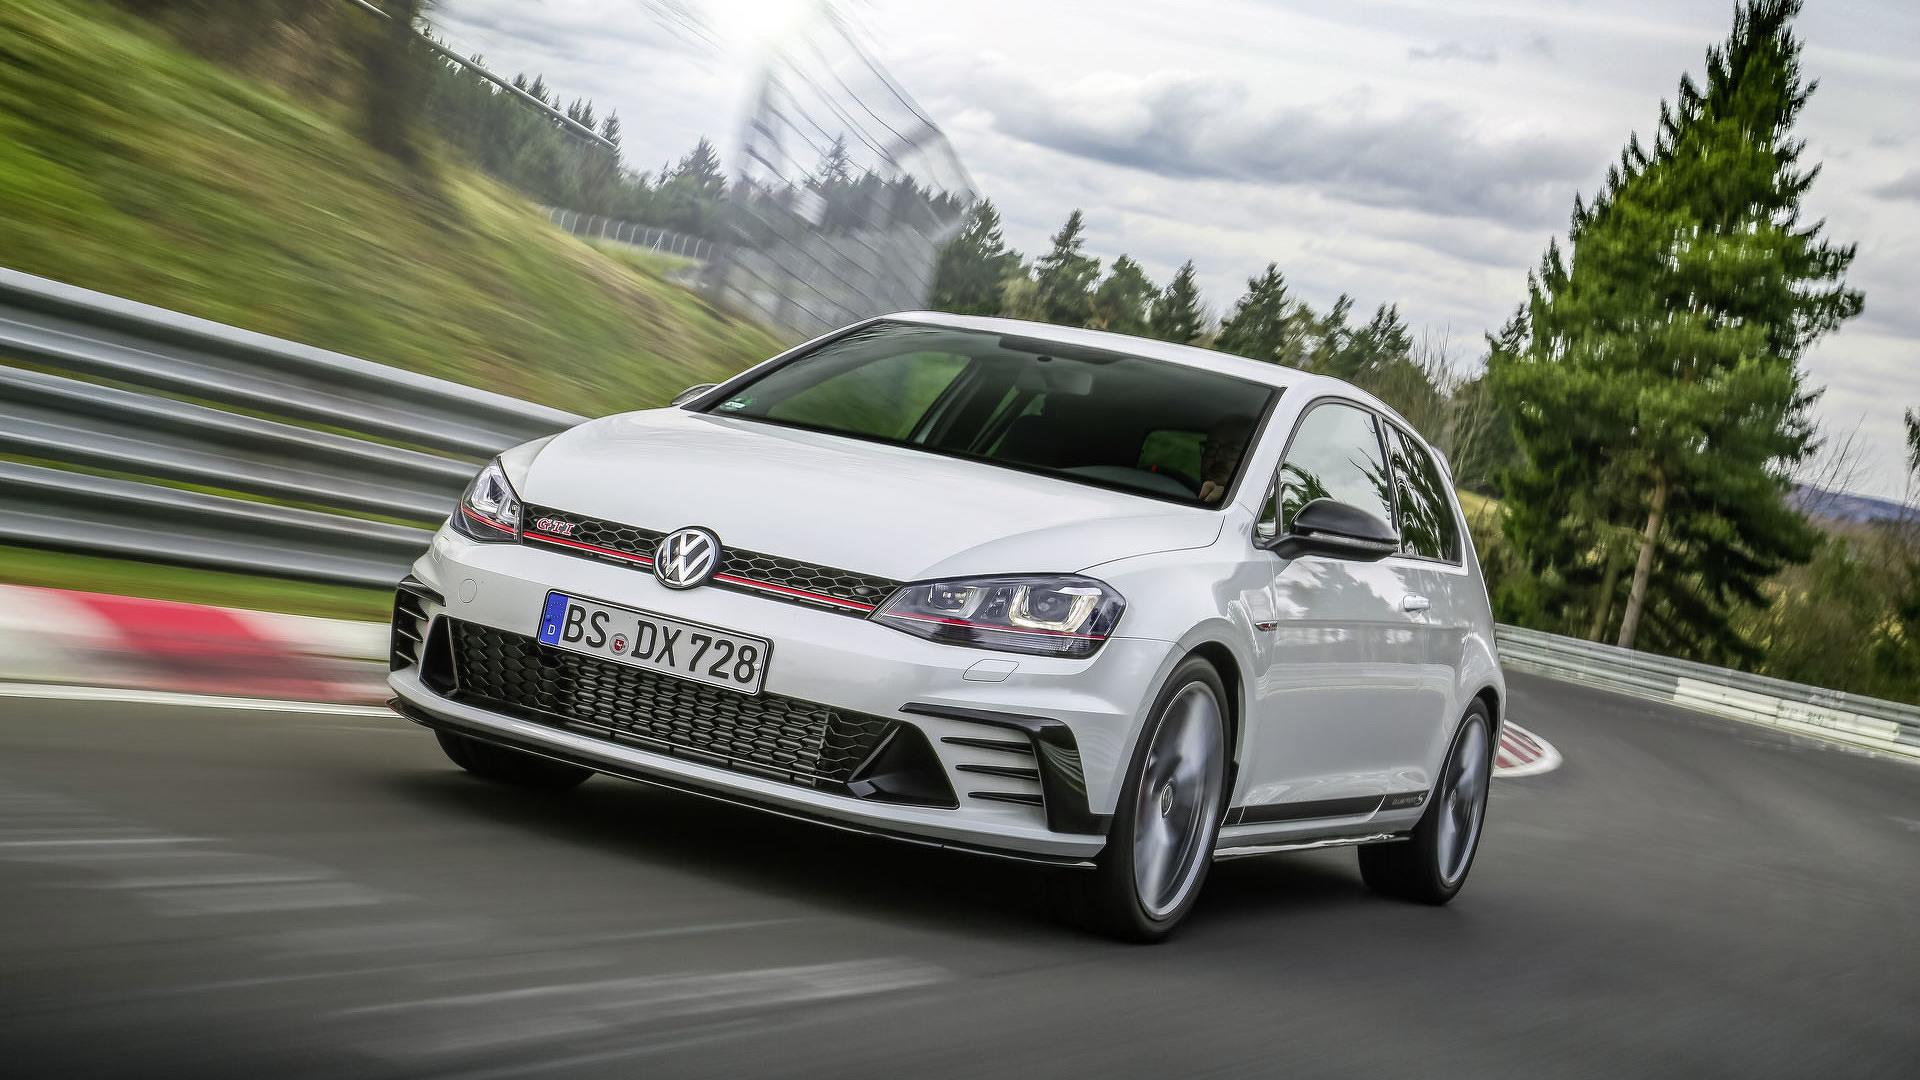 VW Golf GTI Clubsport S Unveiled As The Fastest Front Wheel Drive Car To Lap Nurburgring